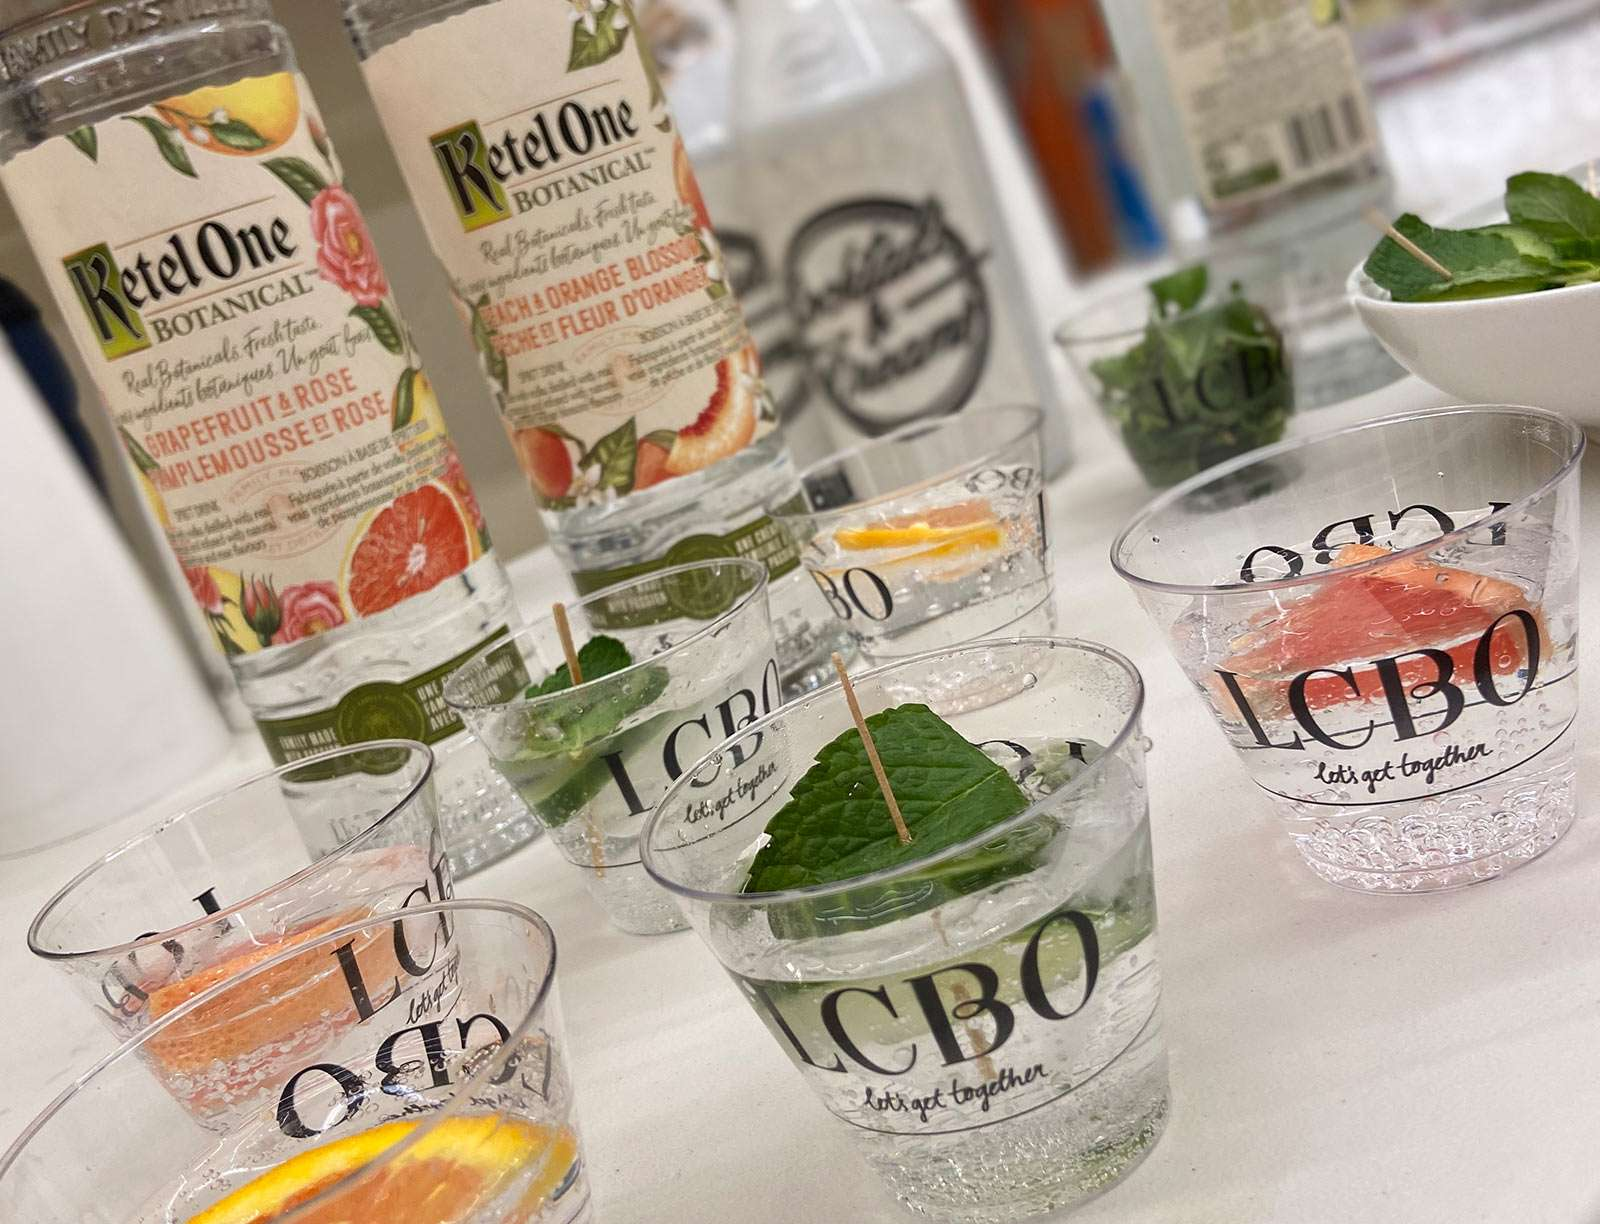 lcbo review